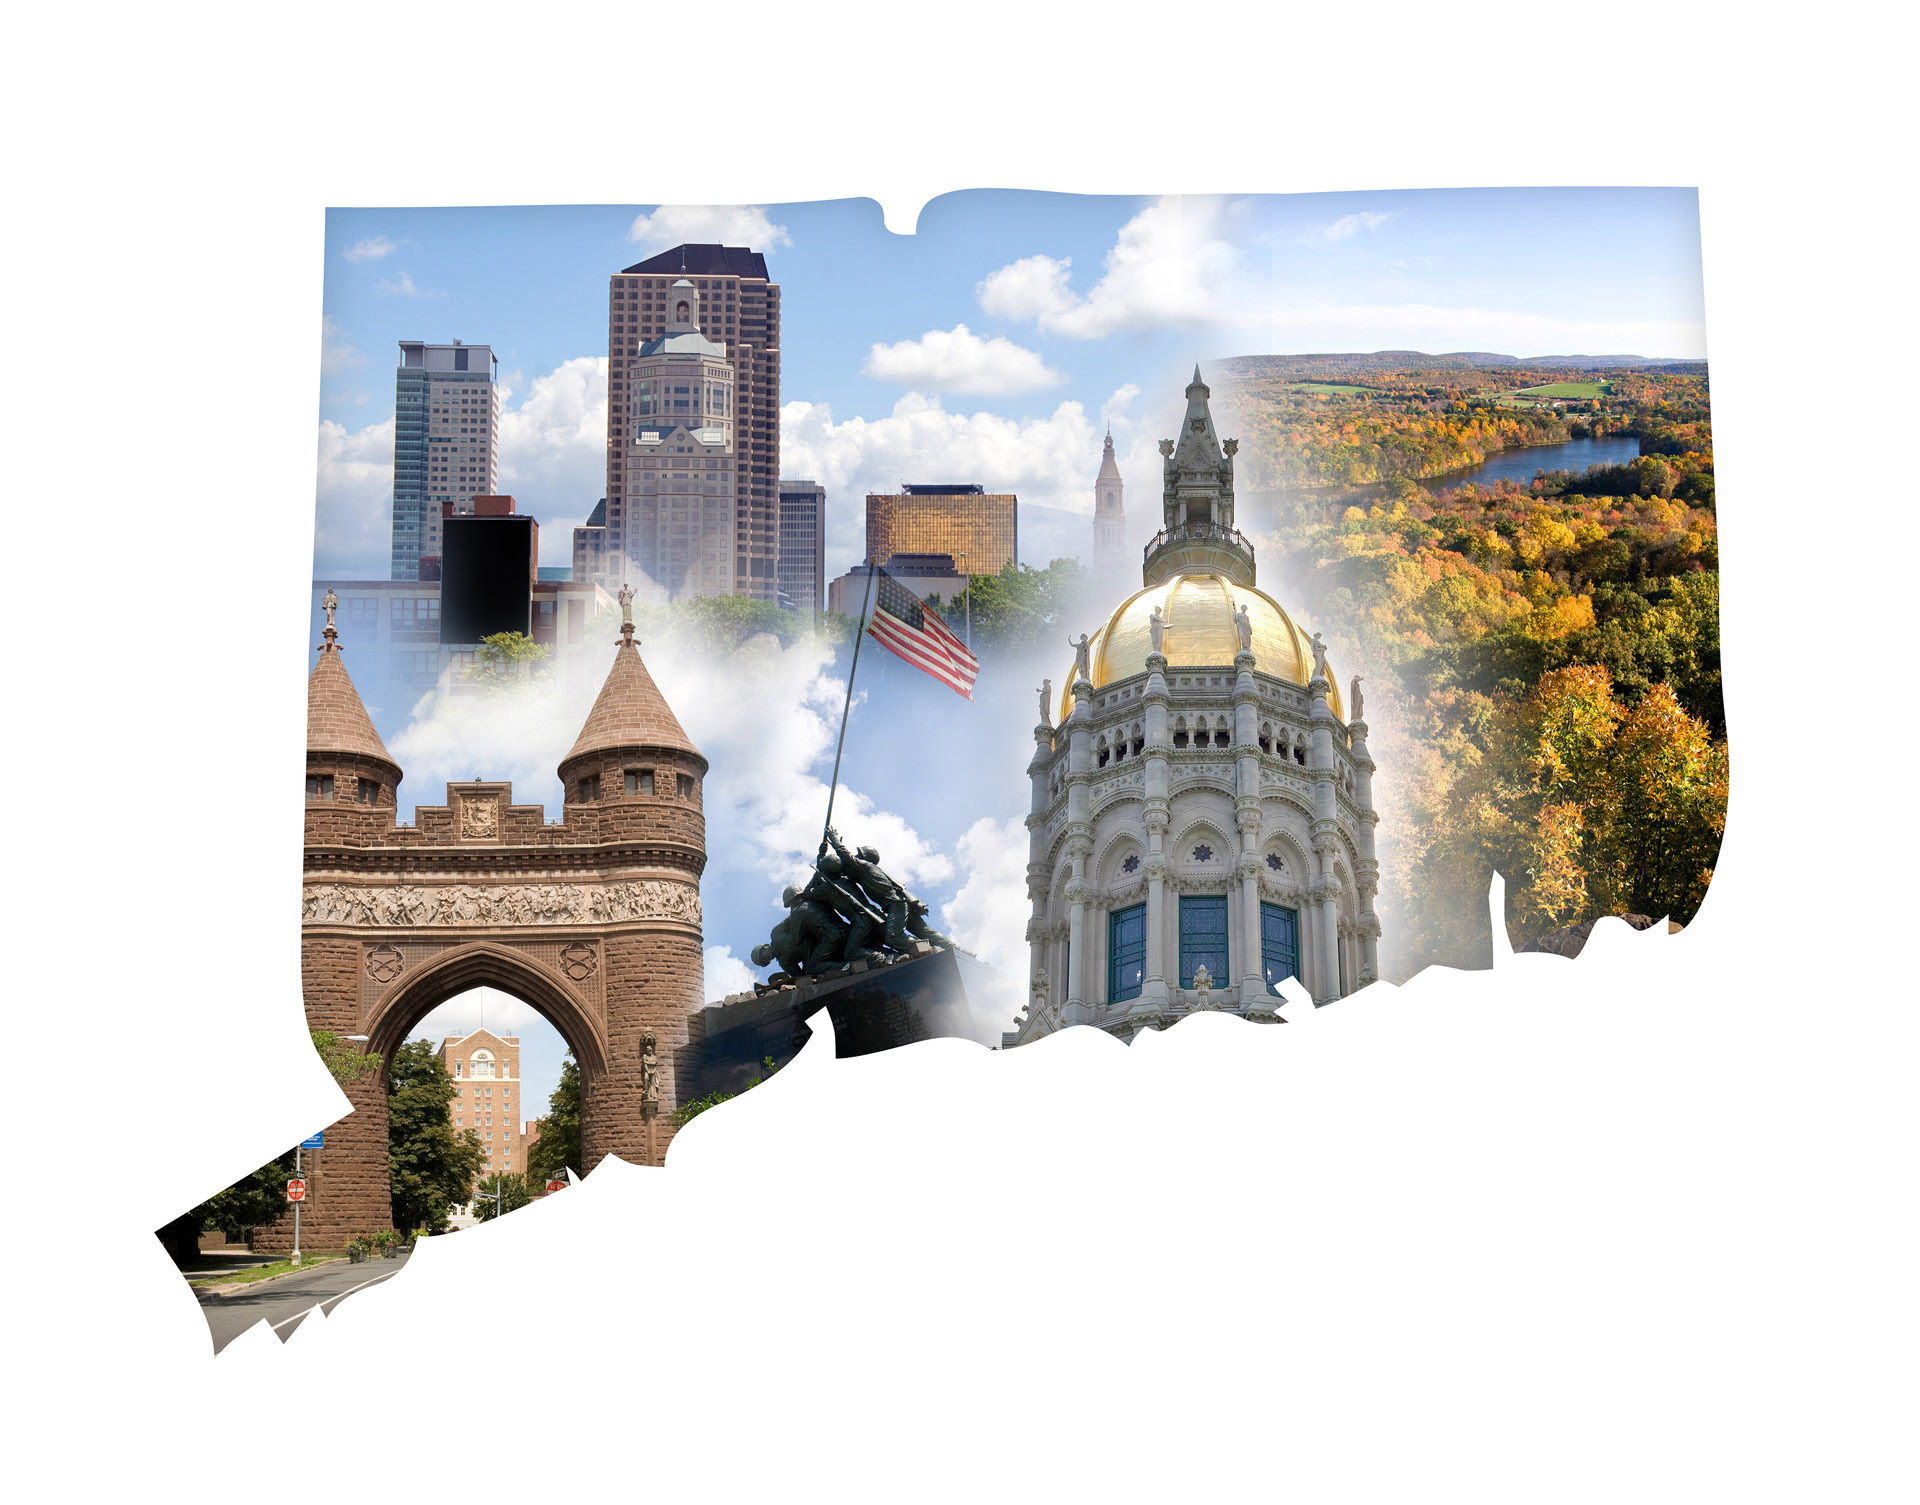 Freebie Friday: Free or reduced admission to Connecticut's tourist spots for Open House Day